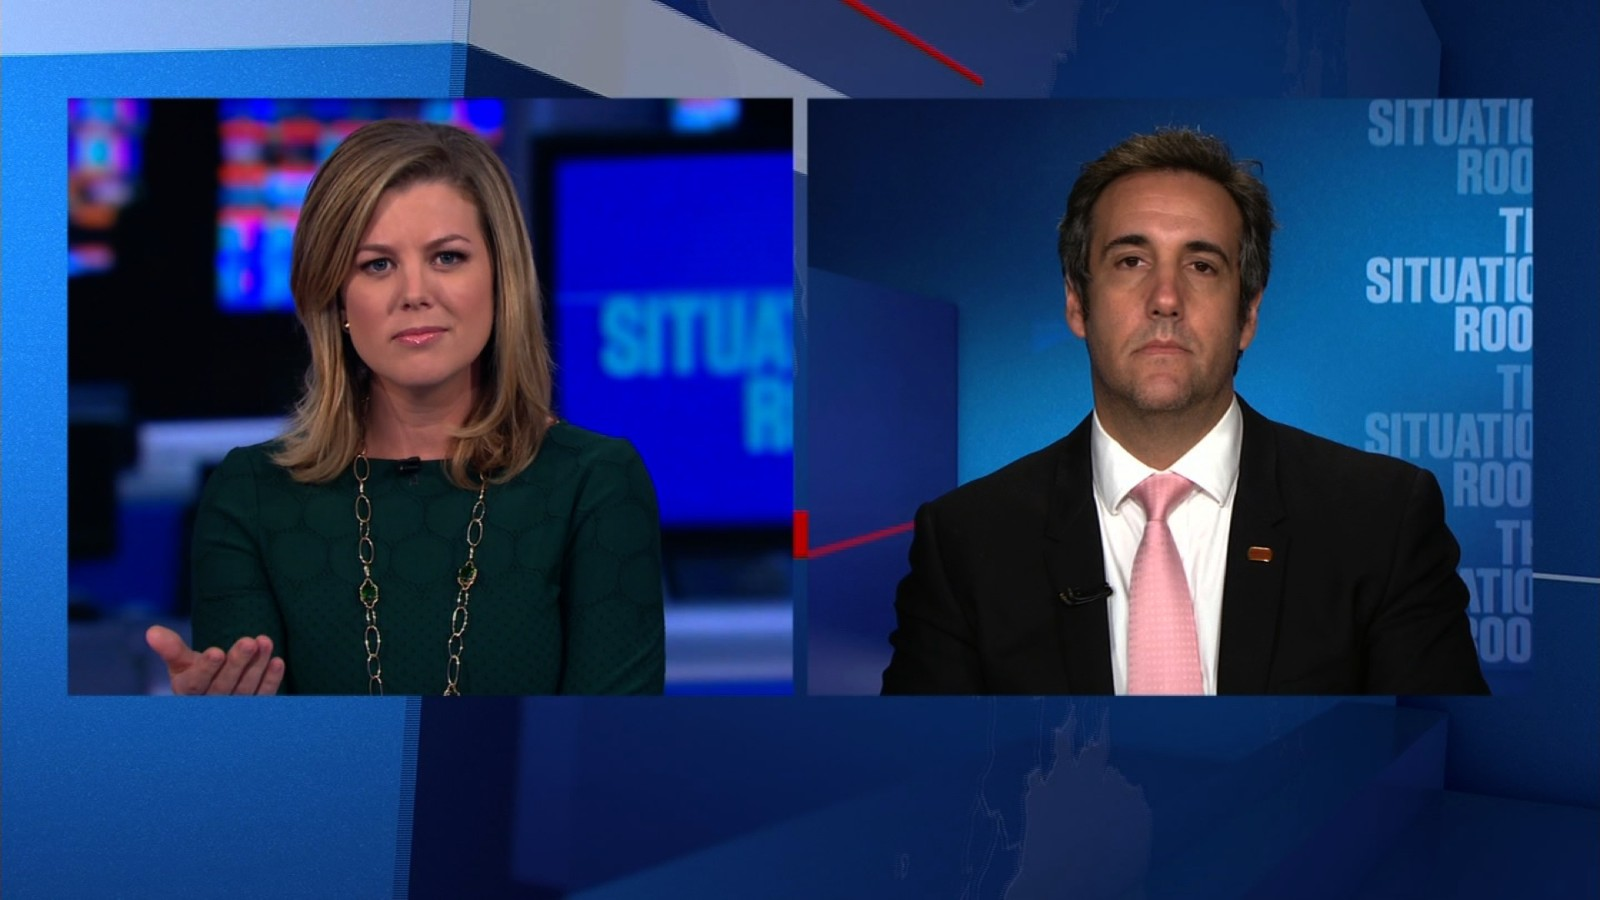 Michael Cohen Denies Trump Campaign Shake Up . Cnn Situation Room Live  Stream ... Part 12